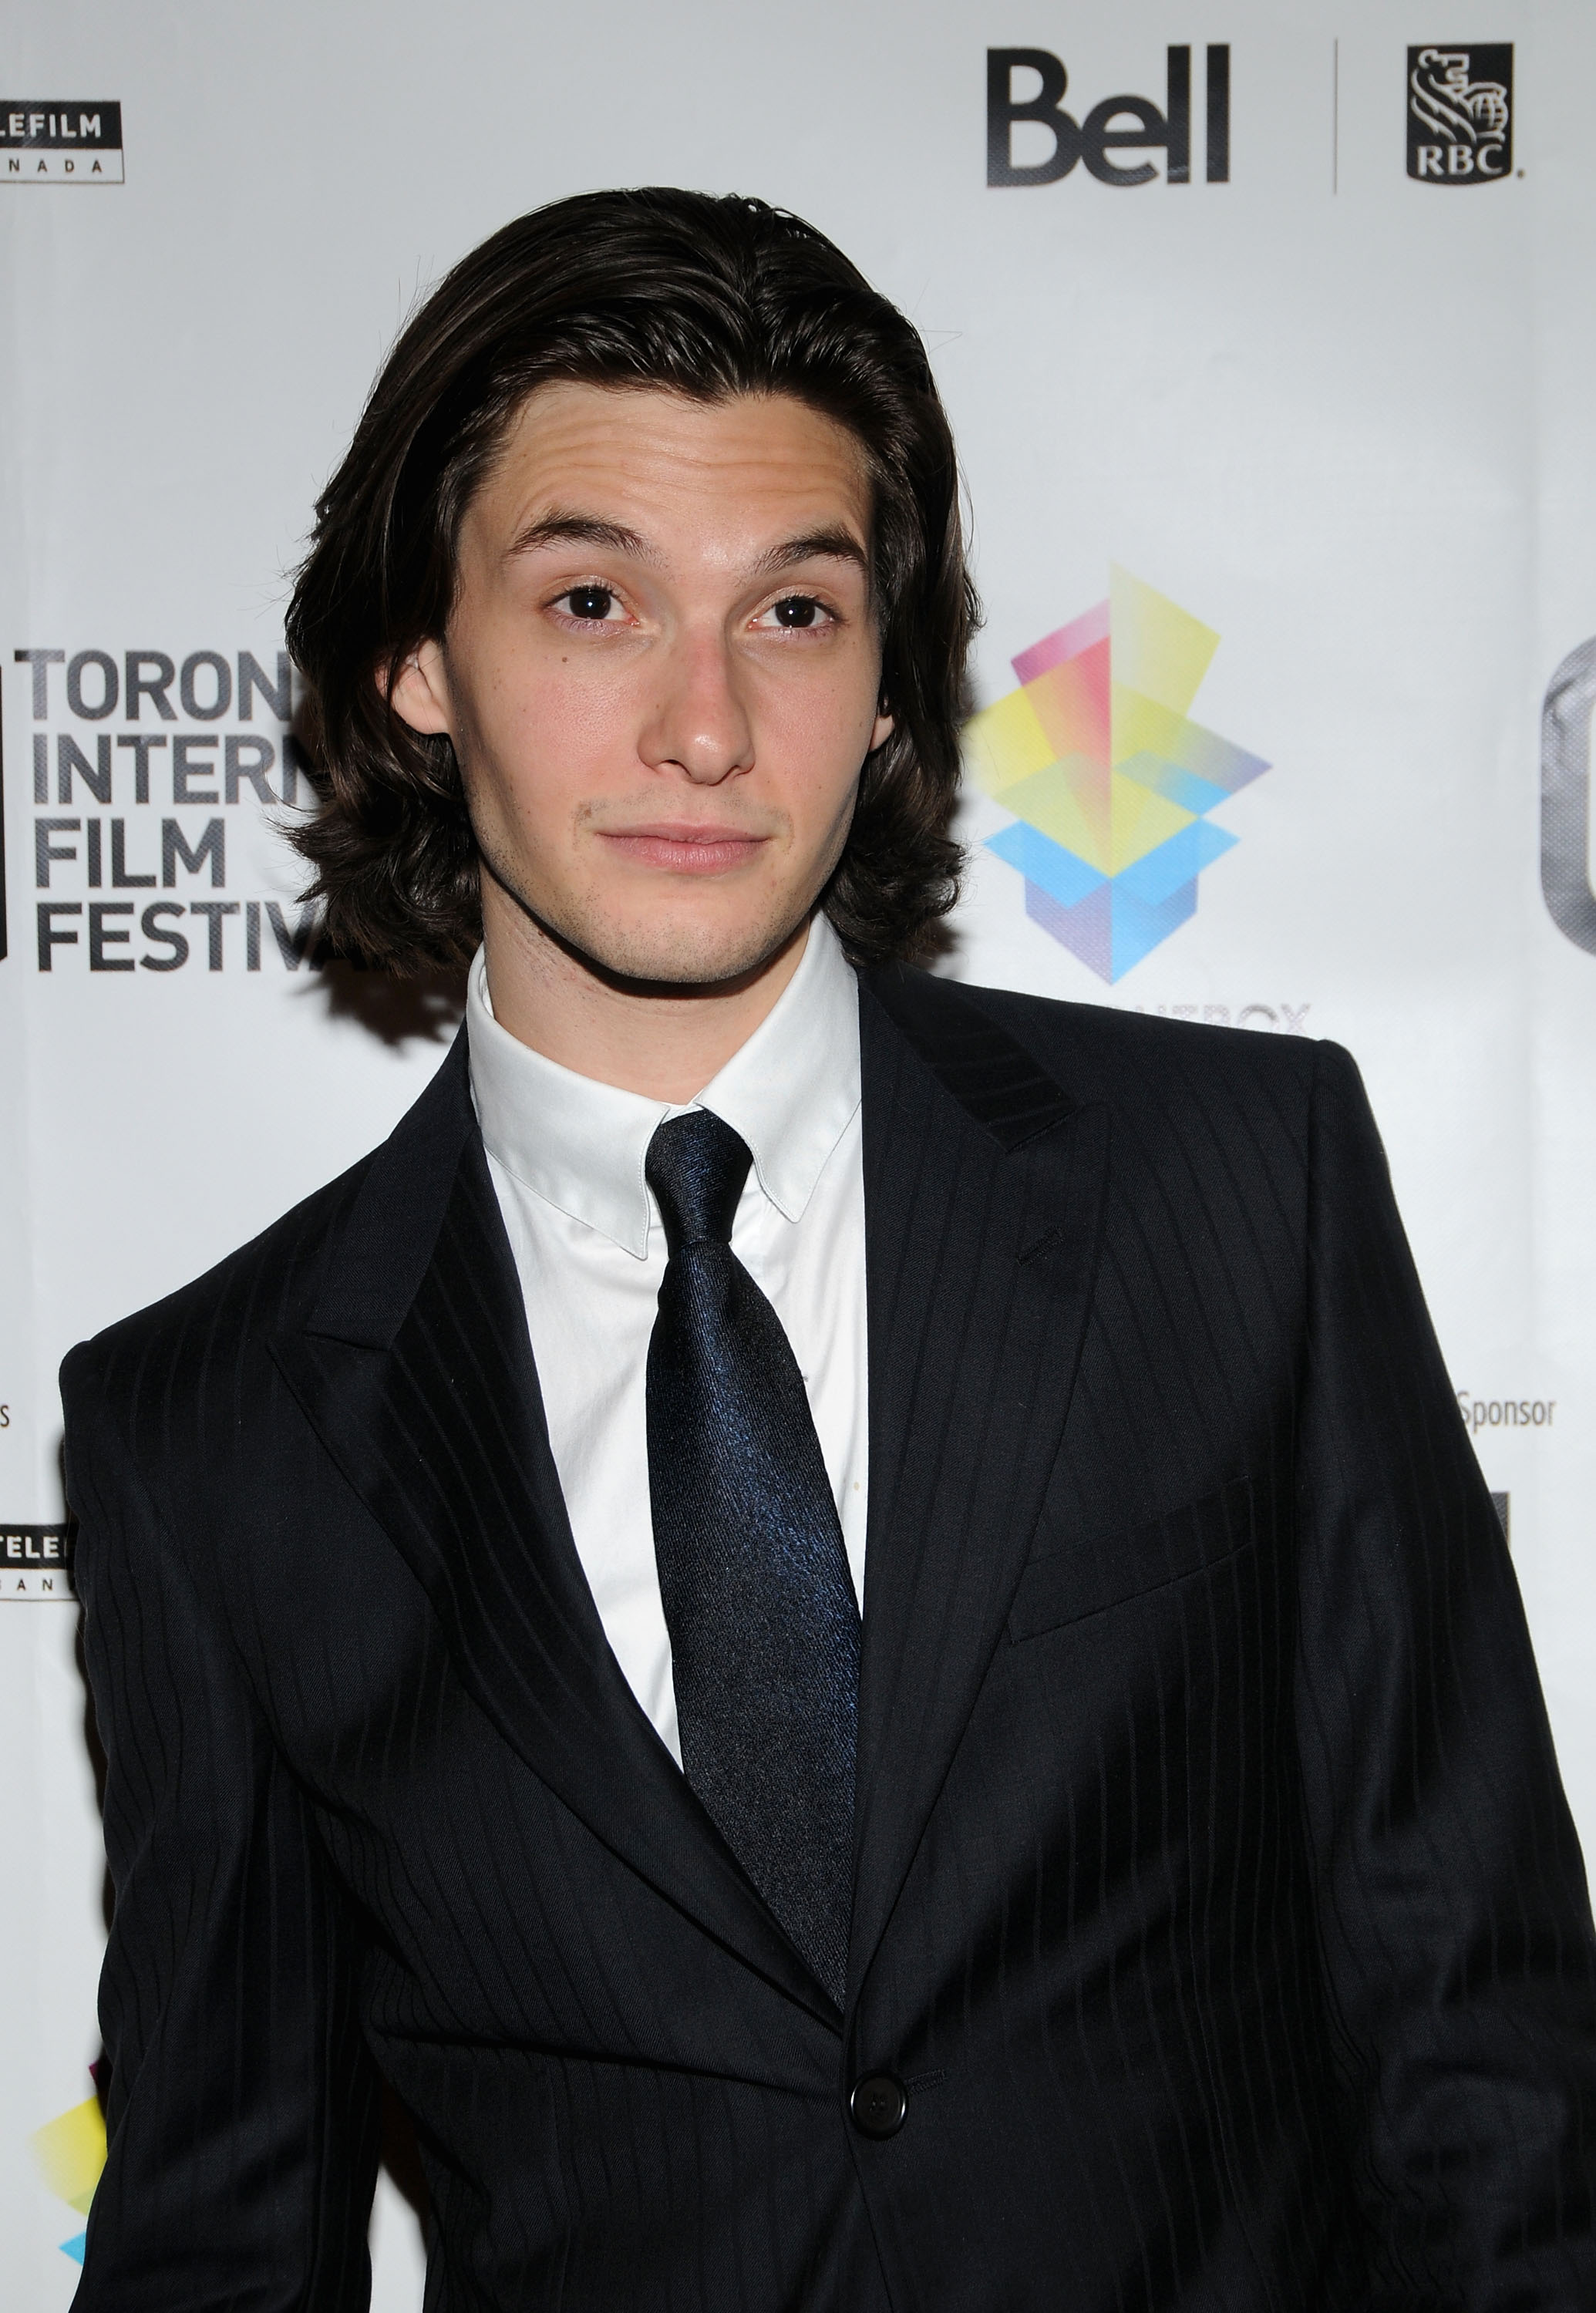 Бен Барнс - Ben Barnes фото №413900: http://www.theplace.ru/photos/photo.php?id=413900